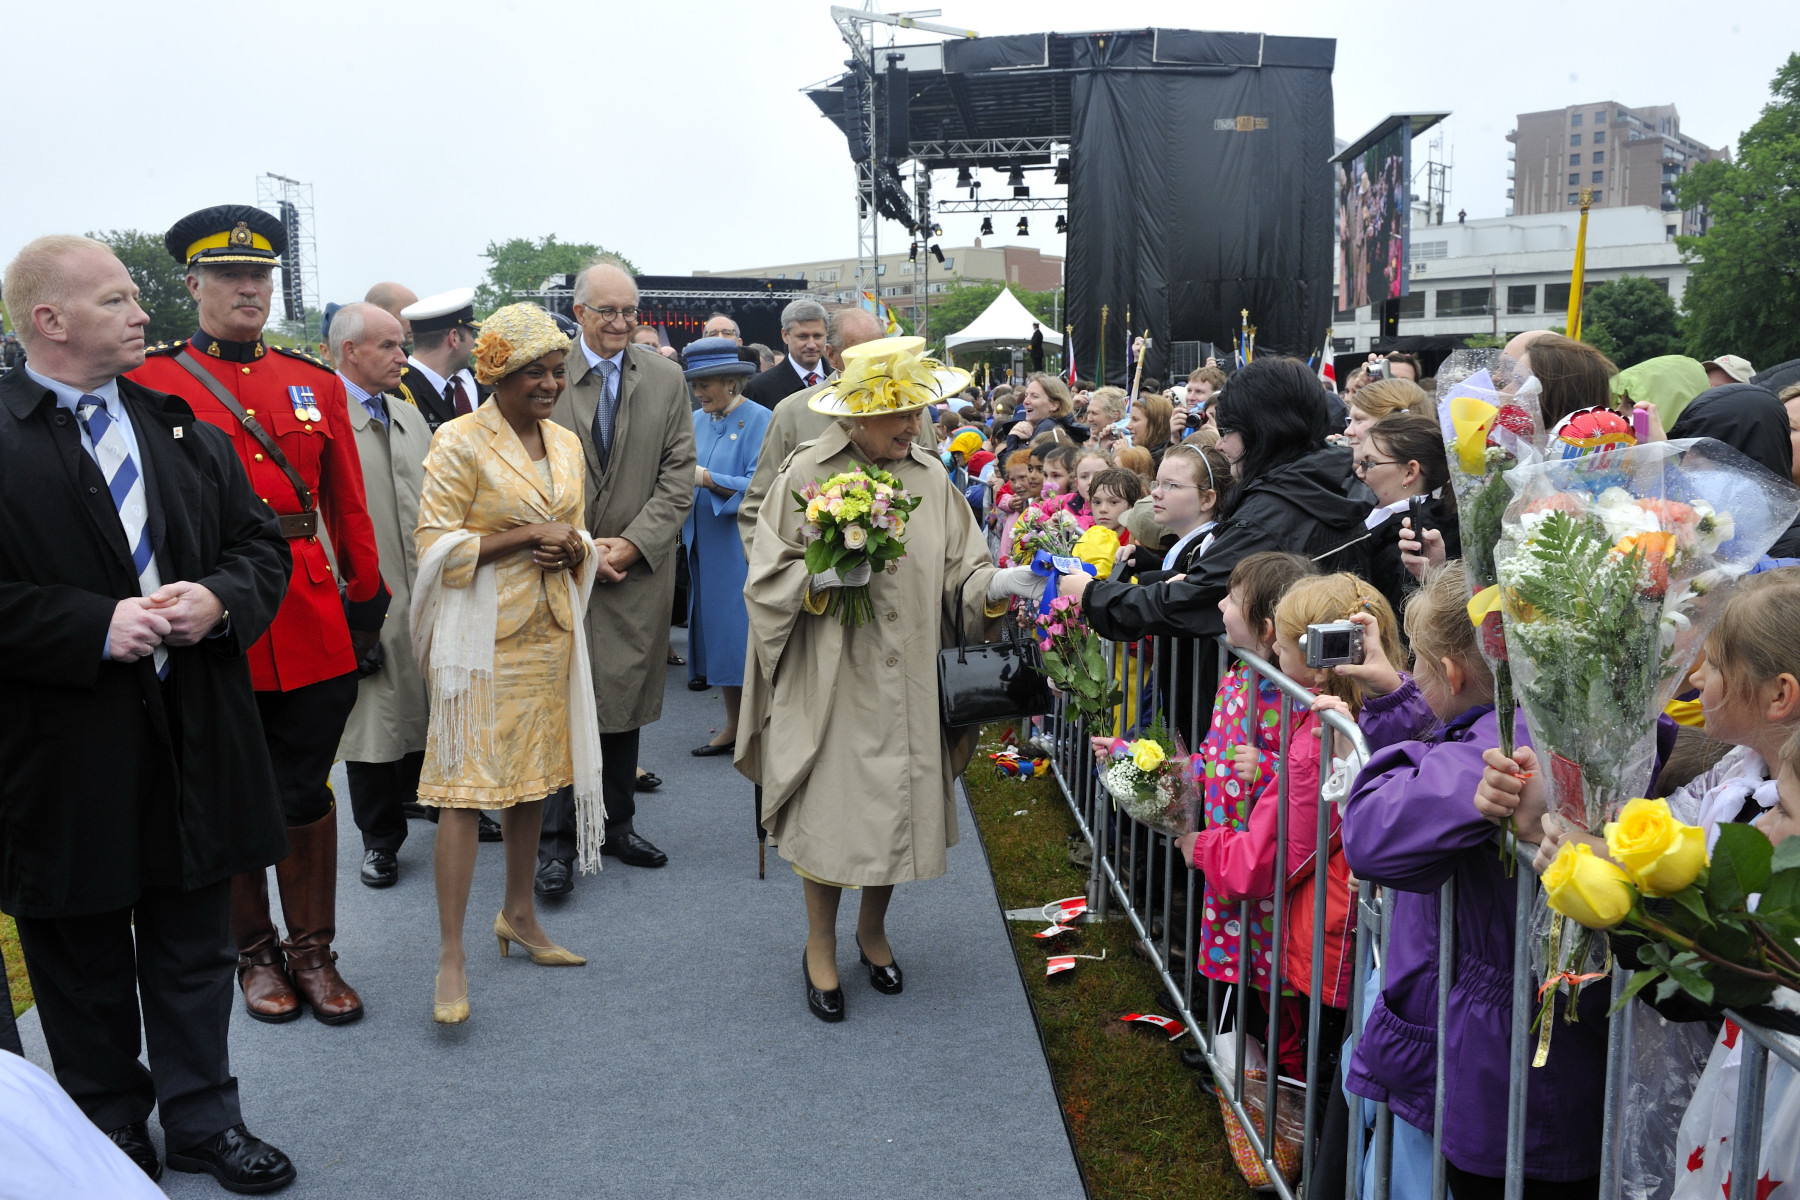 Her Majesty took a few minutes to say hello to the crowd.